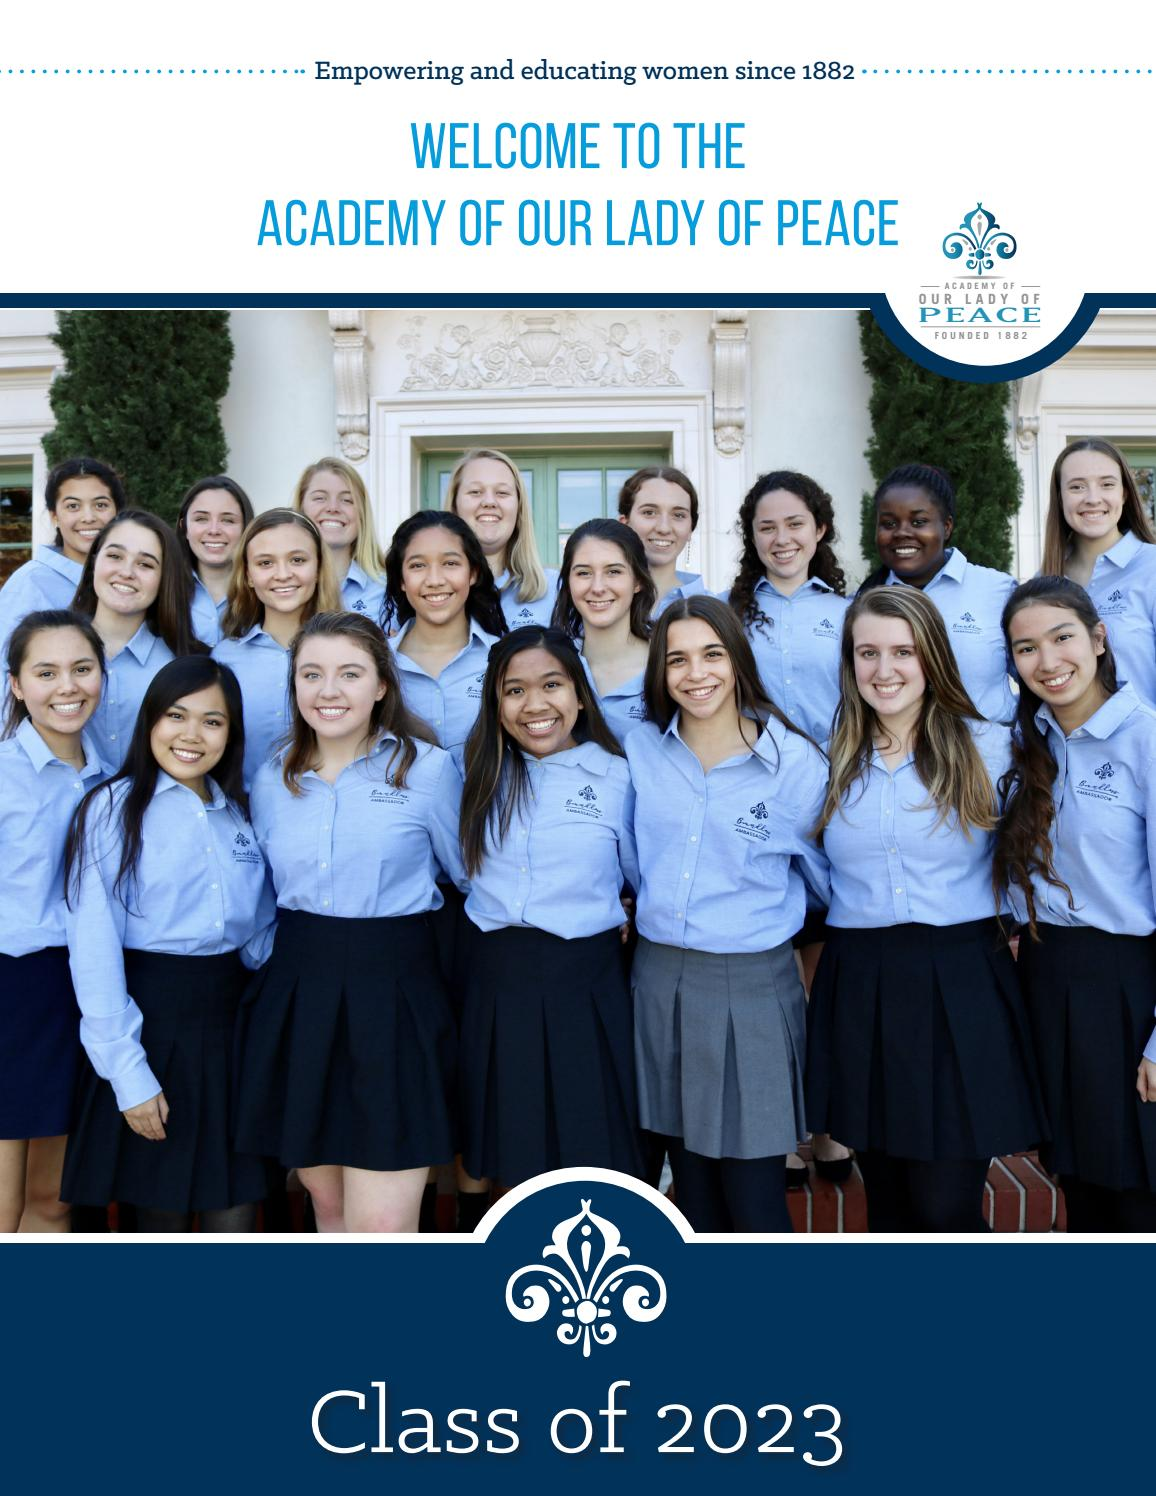 Class of 2023 Frosh Welcome Booklet by Academy of Our Lady